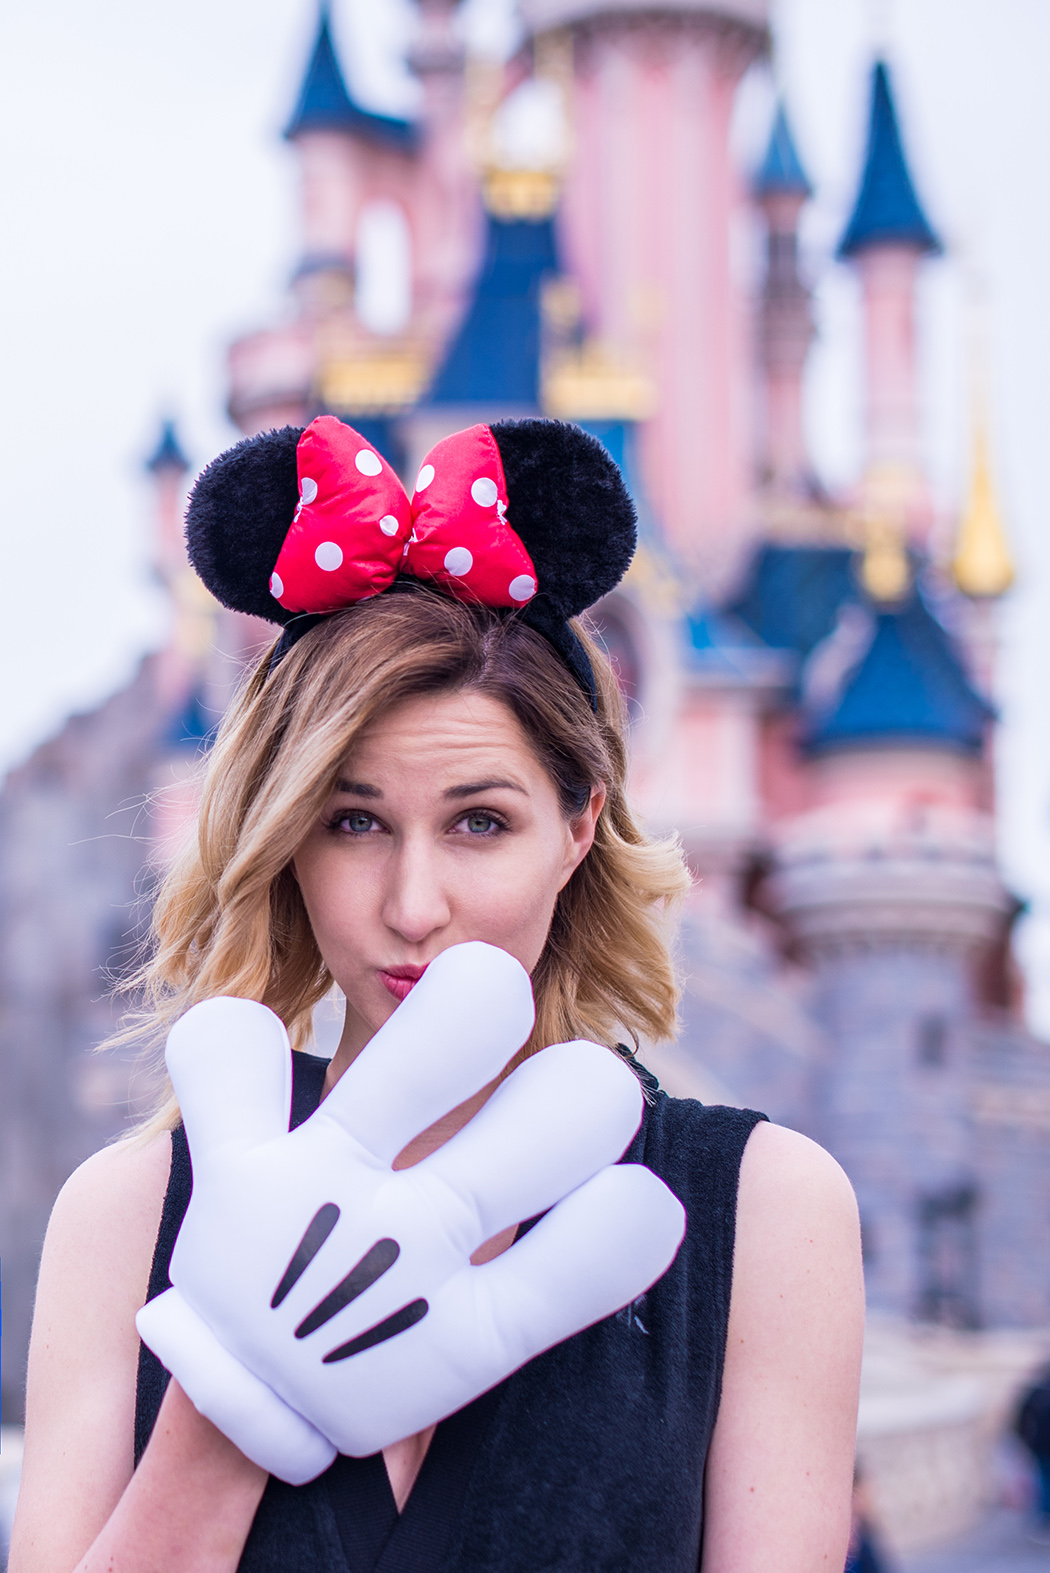 Fashionblog-Fashionblogger-Fashion-Blog-Blogger-Lindarella-One_Piece-Disneyland_Paris-10-web